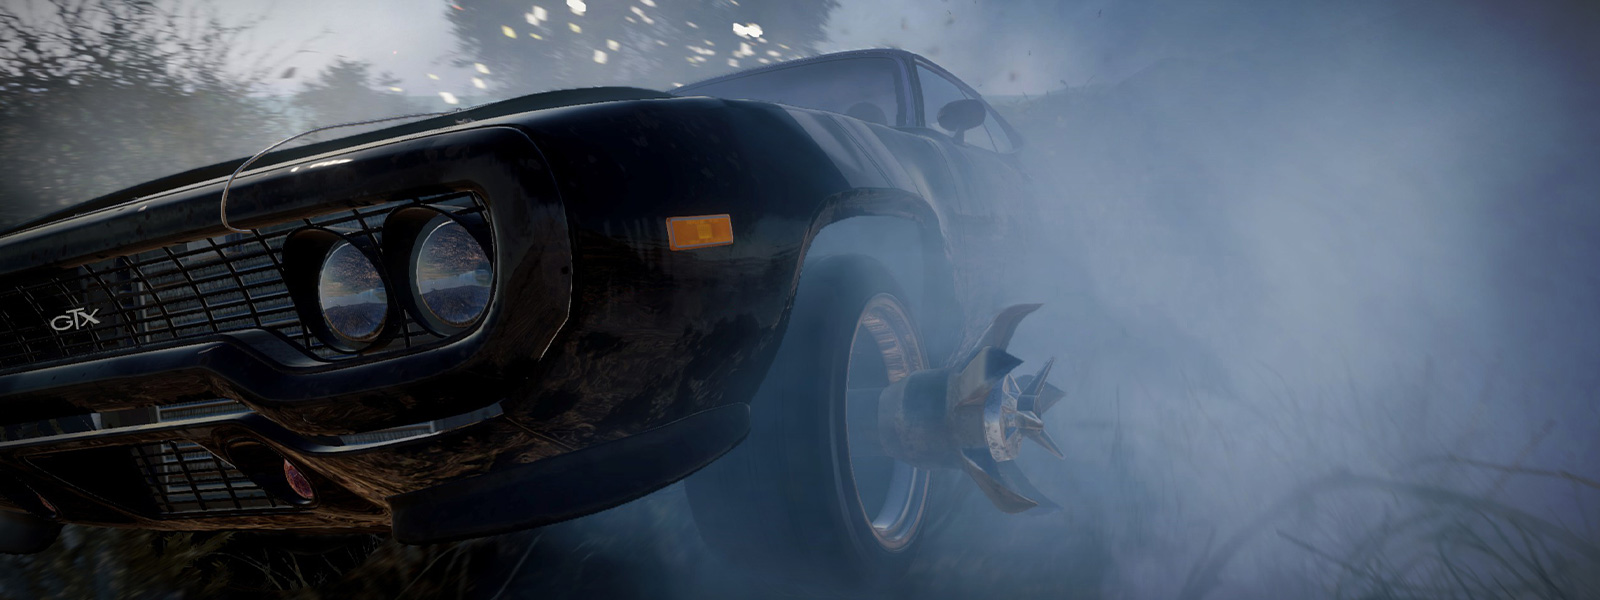 Play an official story-based new chapter in the Fast & Furious universe